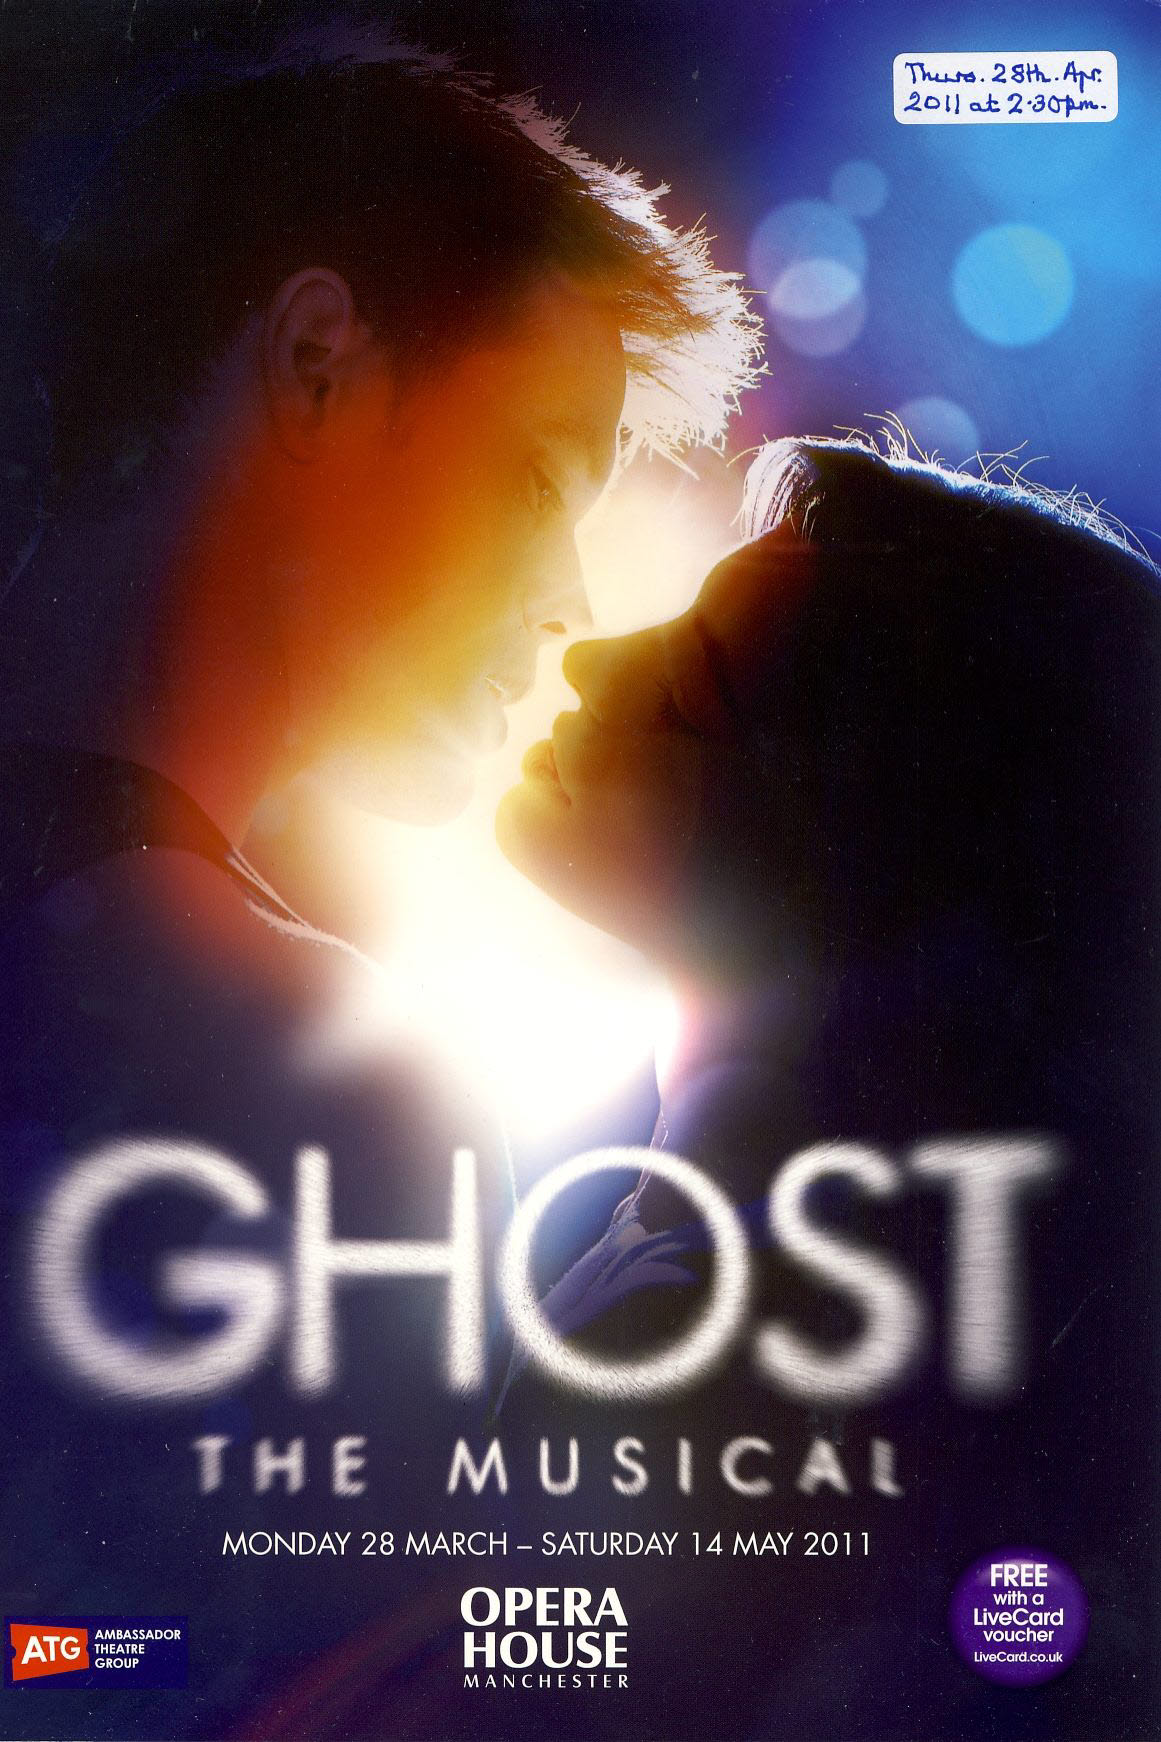 GHOST The Musical 2011 MANCHESTER Opera House Theatre Programme refb1386 Measures approx 21cm x 29cm. Date label on cover.